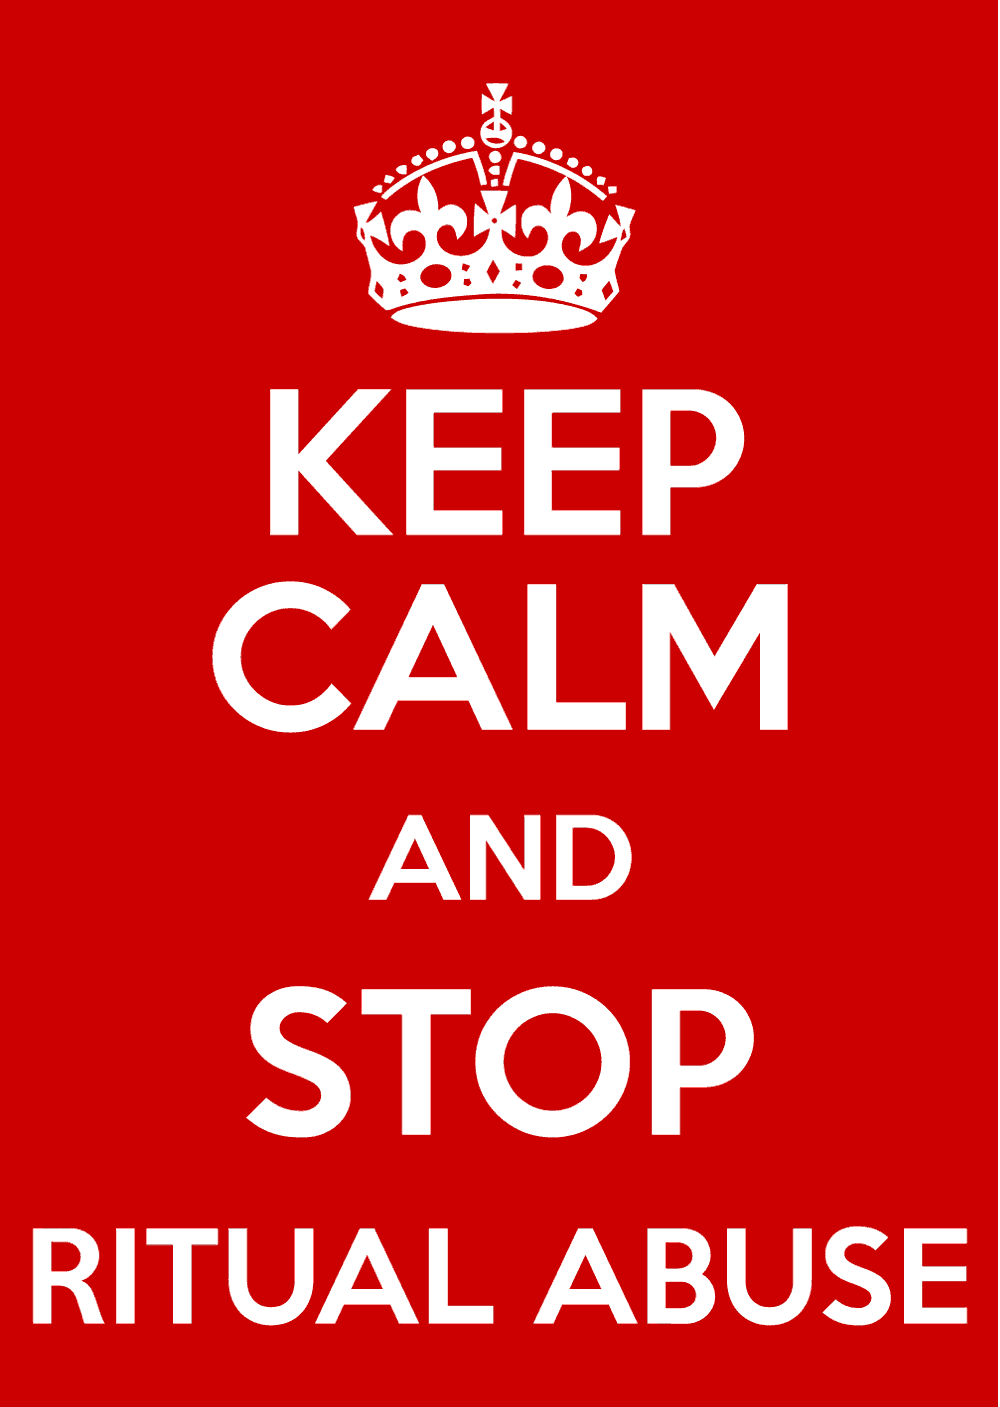 Keep-calm-and-stop-ritual-abuse_websize